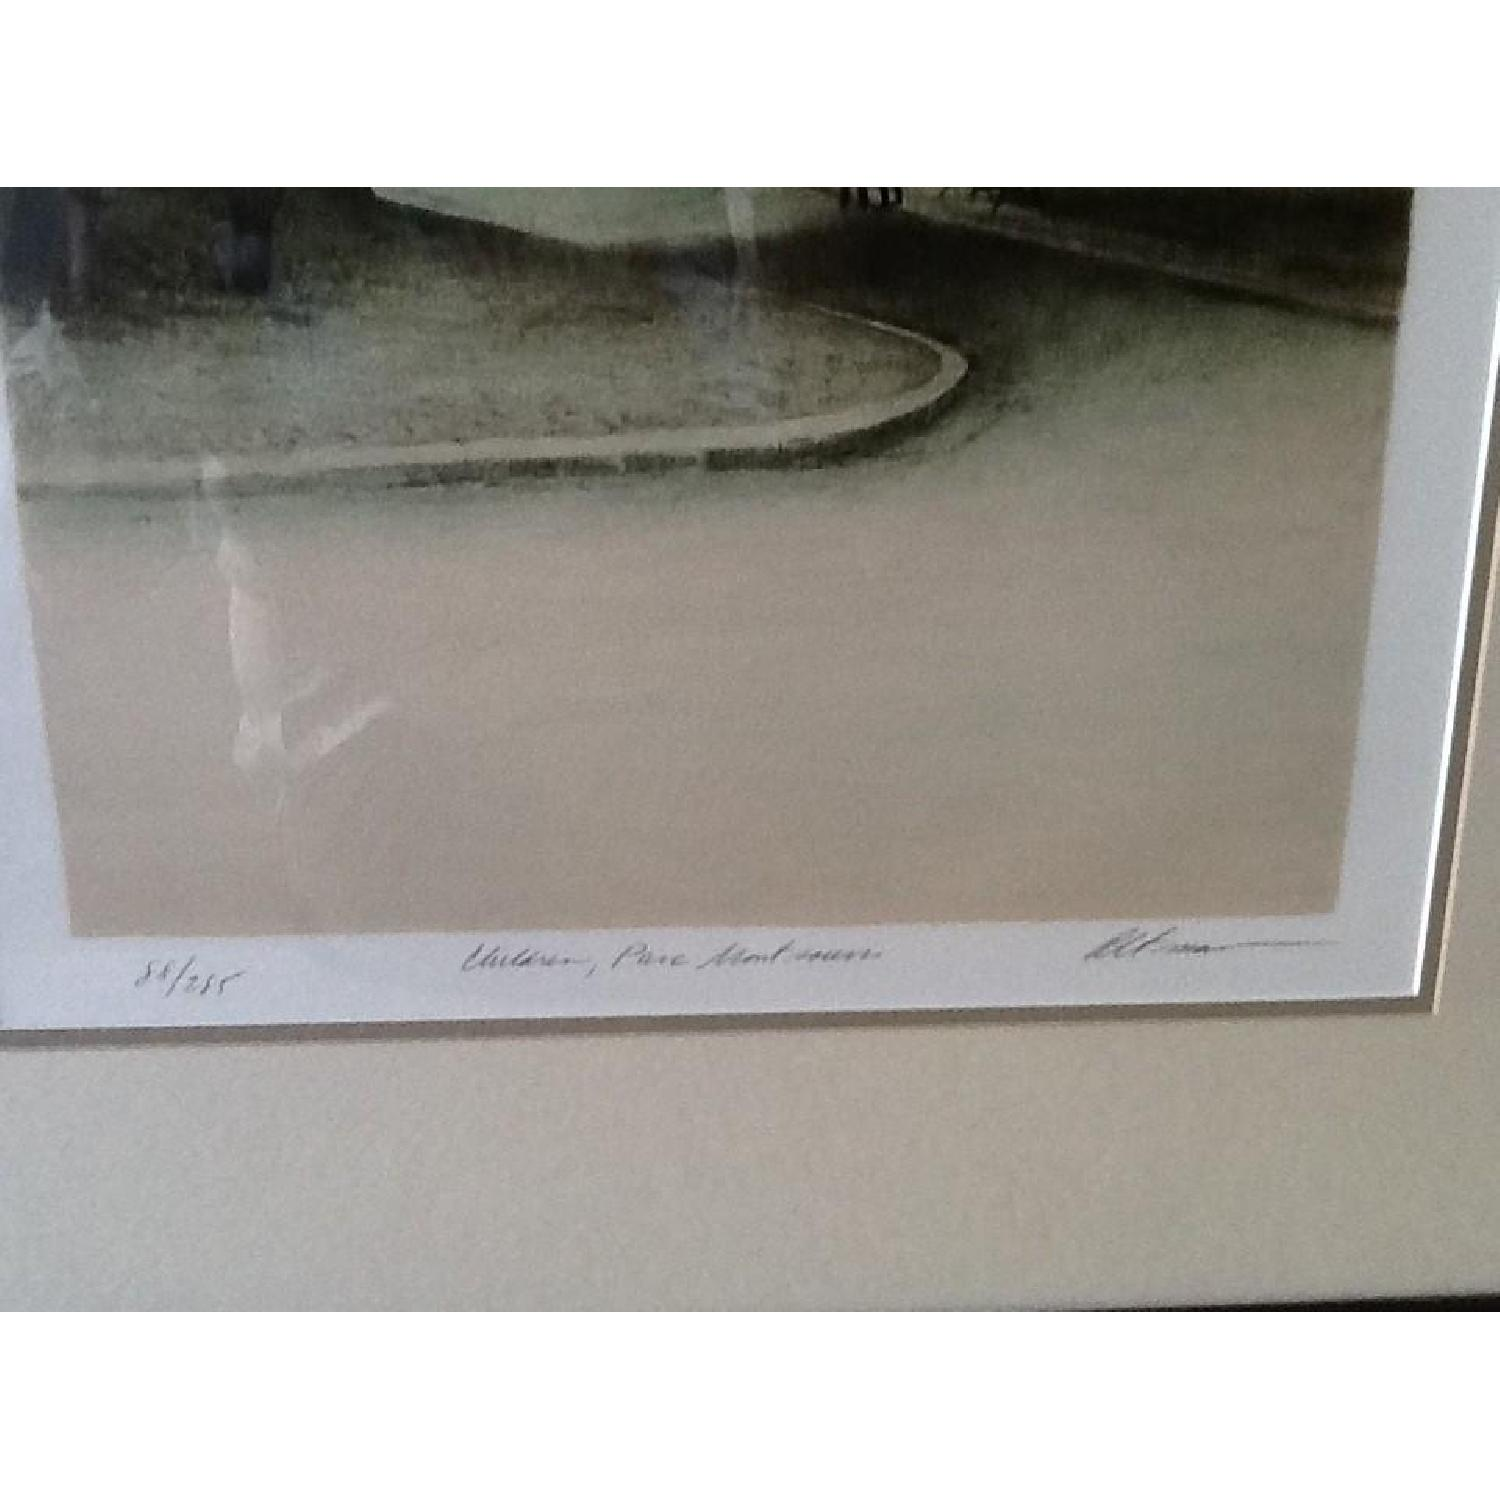 Harold Altman Numbered & Penciled Signed Lithograph - Parc Montsouris - image-1